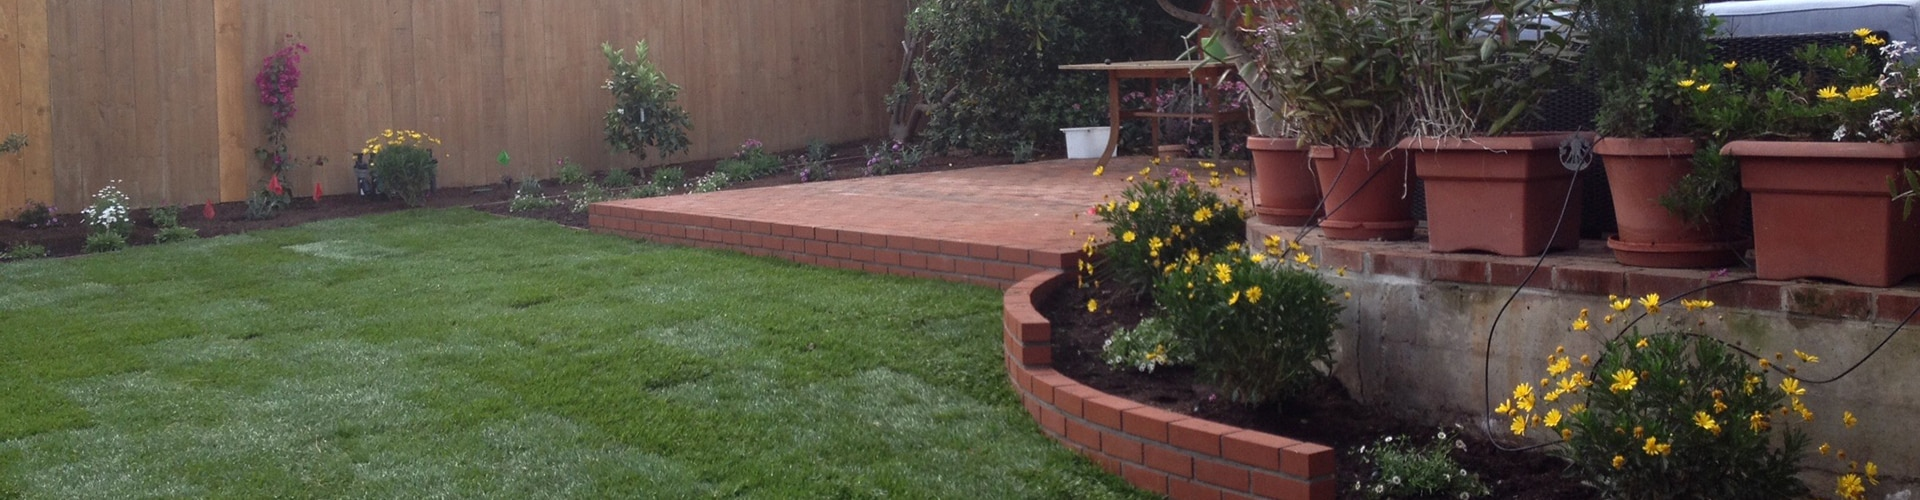 Landscape Contractor Oceanside CA